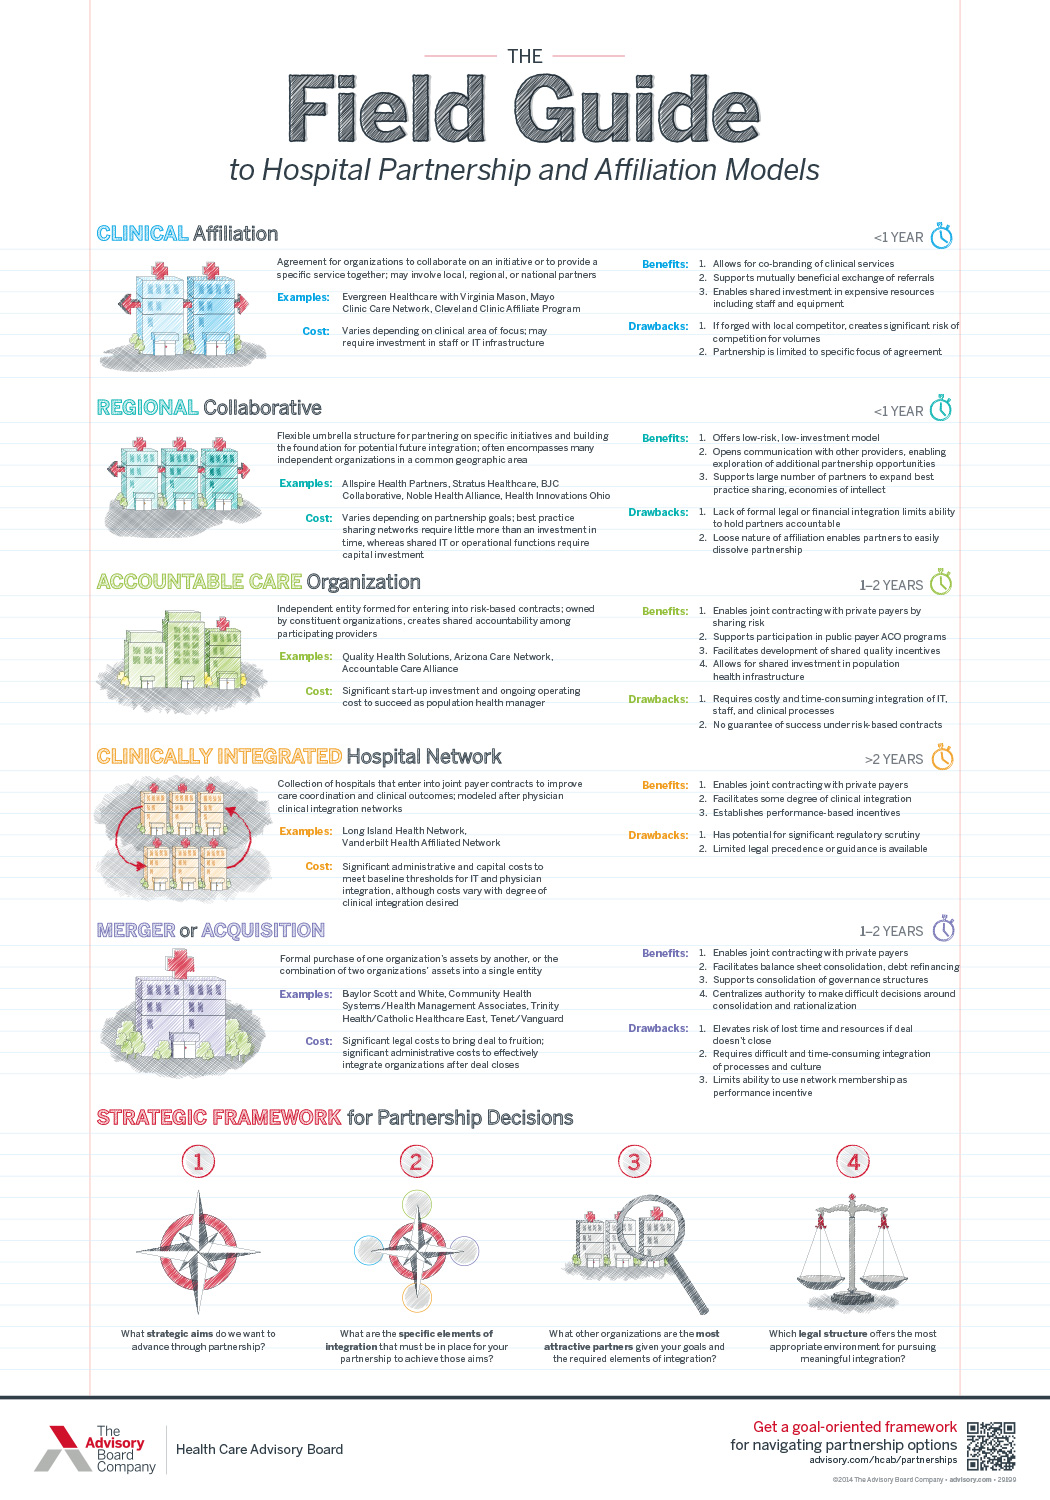 The field guide to hospital partnership and affiliation models